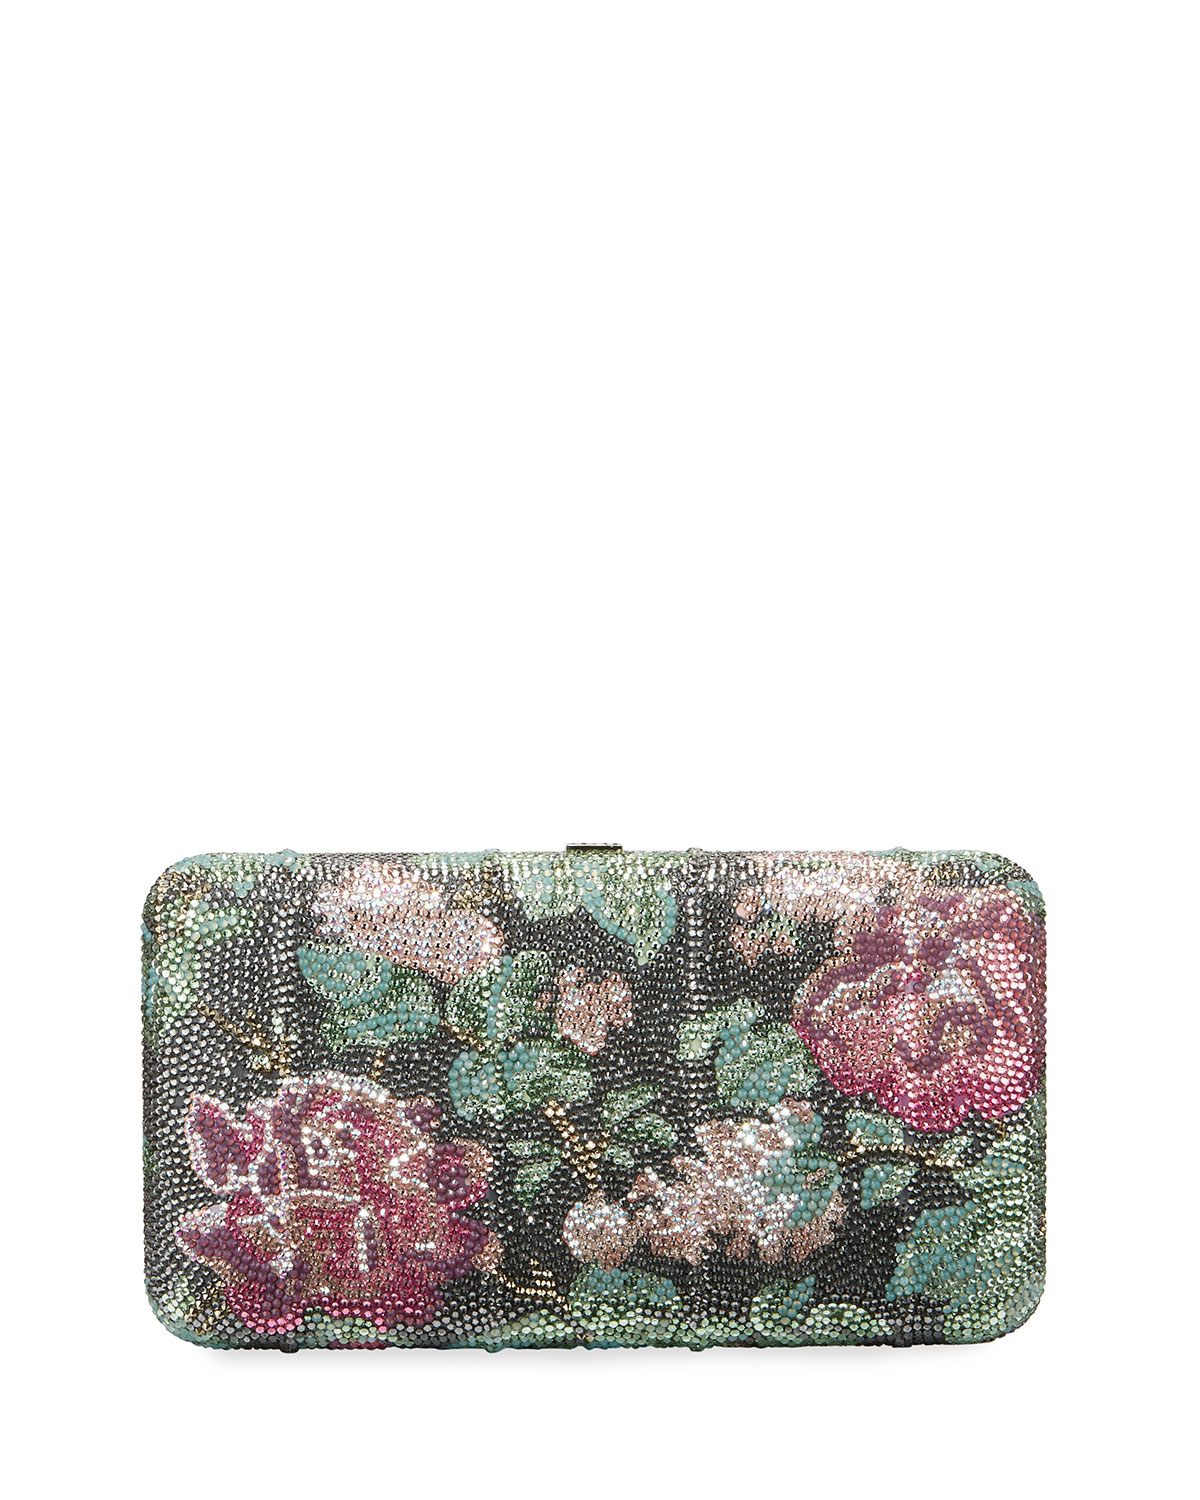 Pink Symphony Large Clutch Bag, Multi